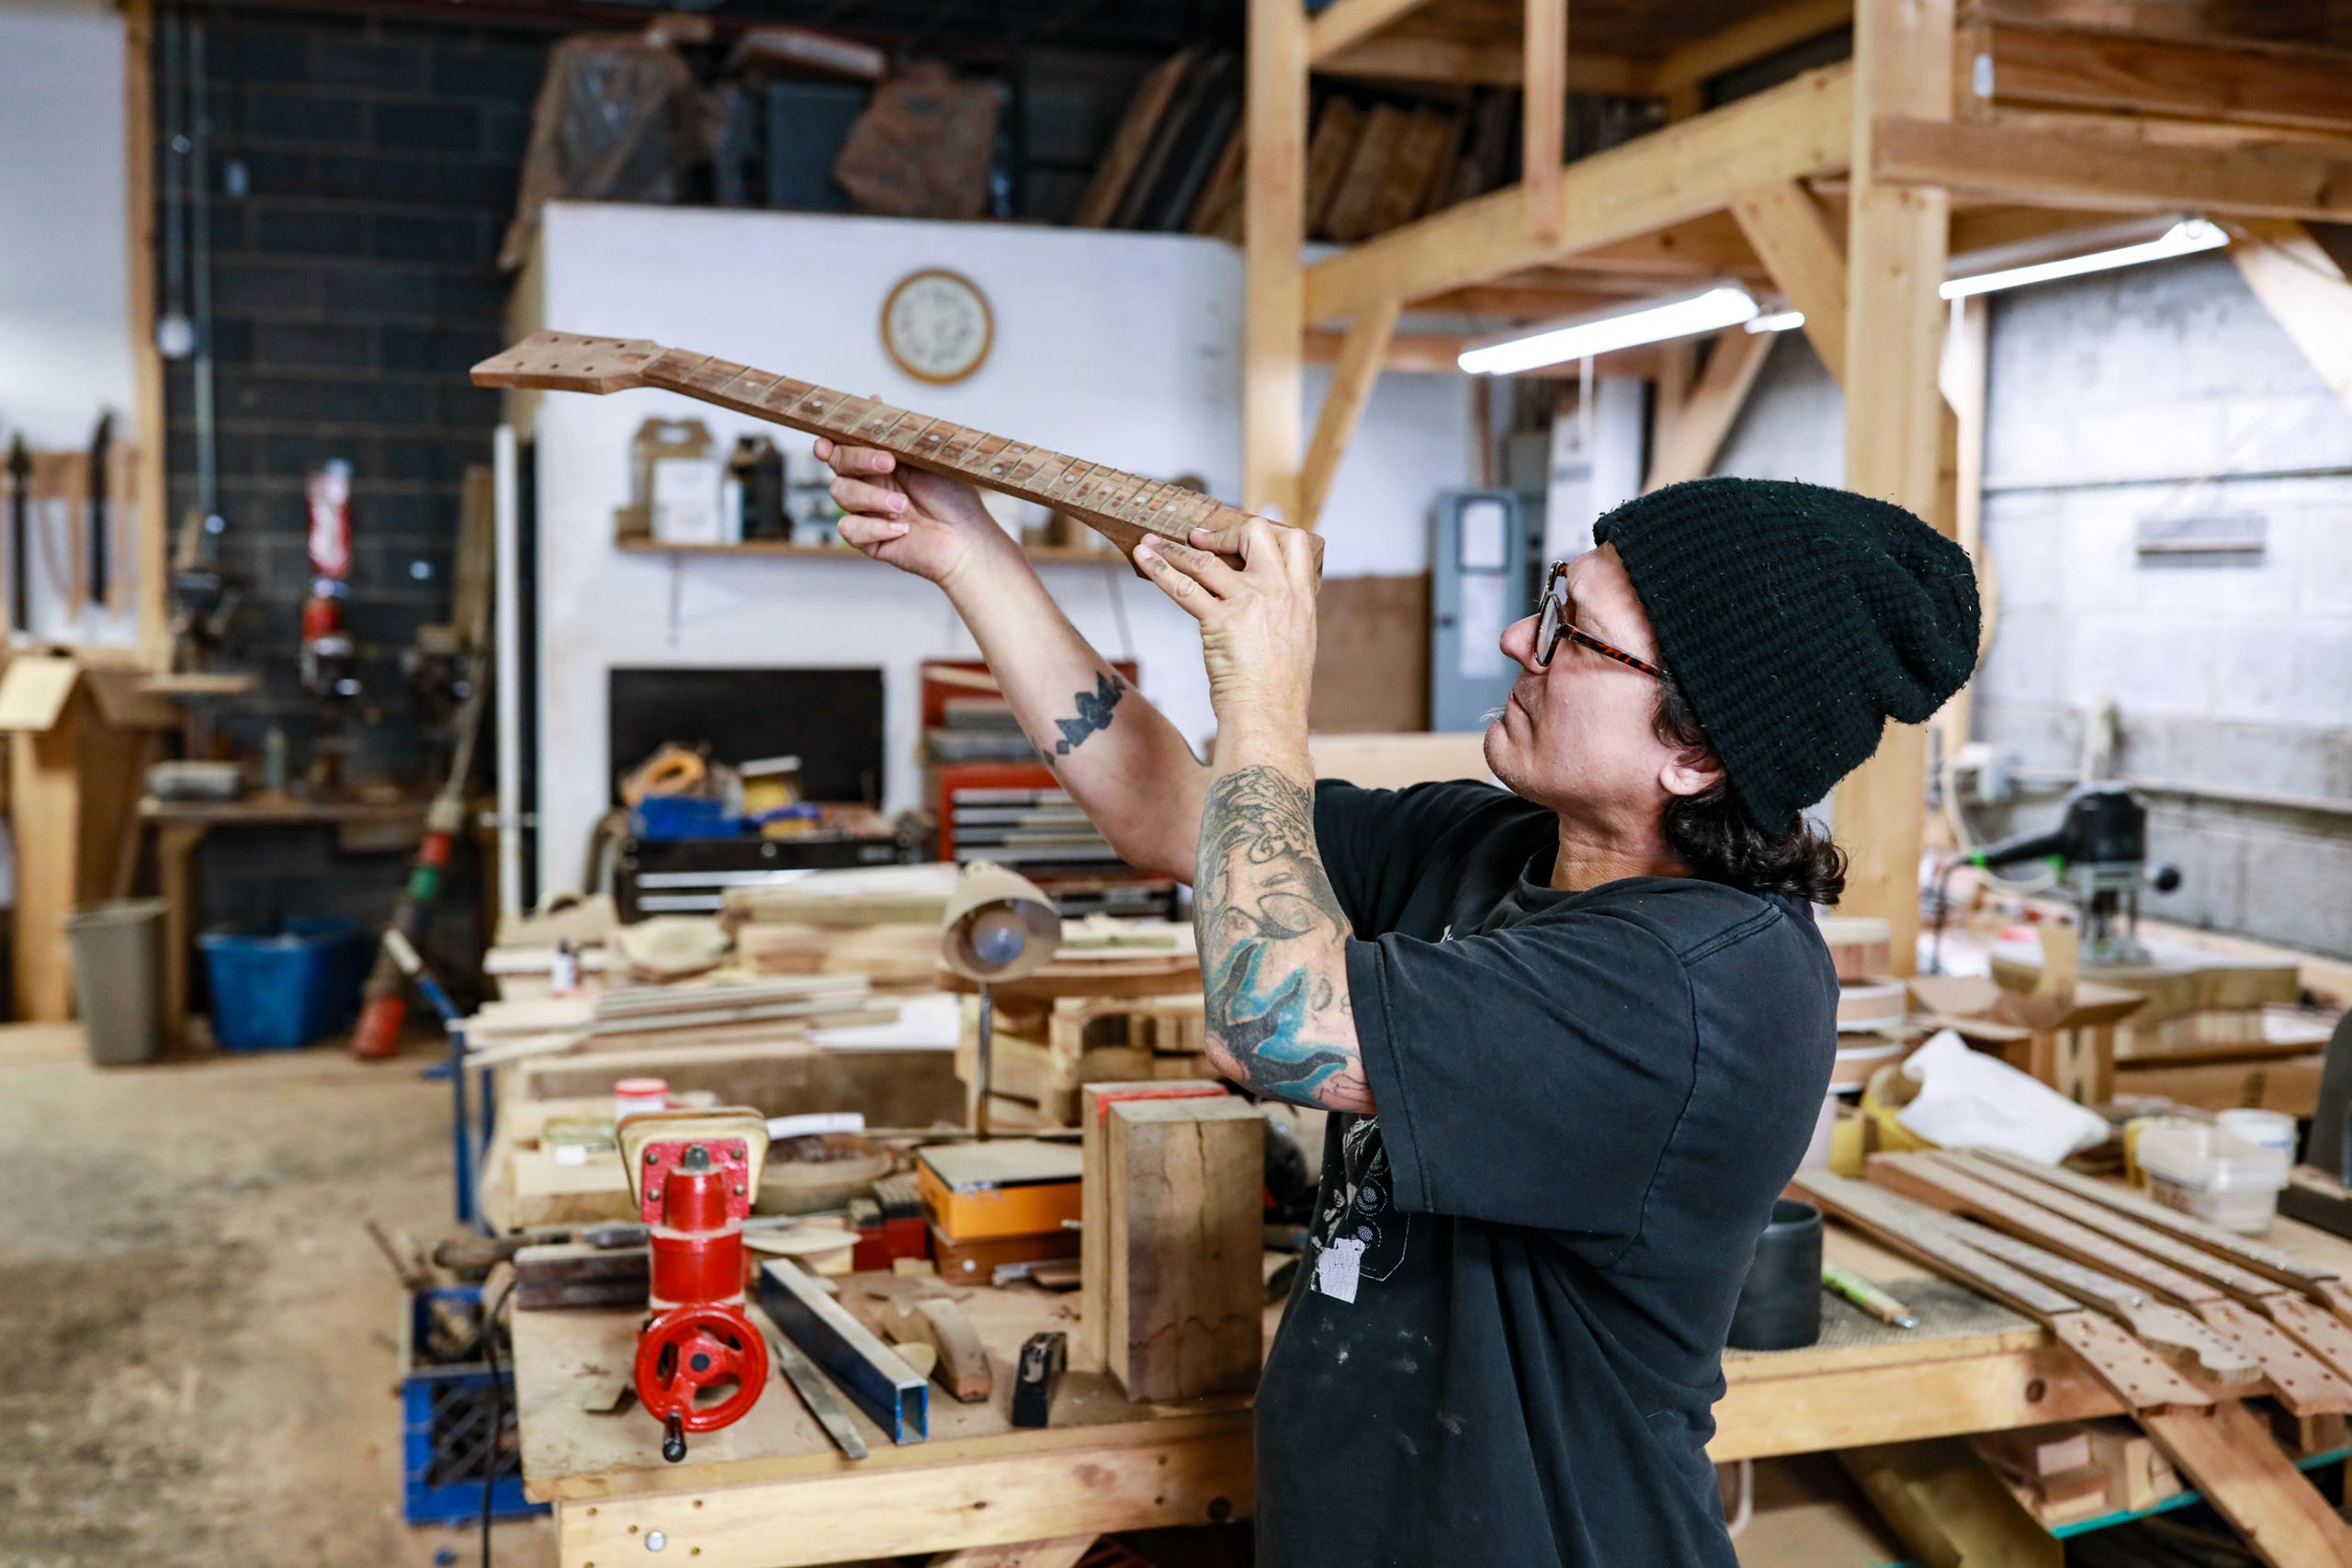 Gabriel Currie, 52, of Detroit works in his woodworking studio where he handcrafts guitars for the company he founded, Echopark Guitars, in the Old Redford neighborhood of Detroit on Nov. 12, 2020. Currie moved to Detroit in 2017 with his family from Los Angeles after finding a historic home in Detroit.